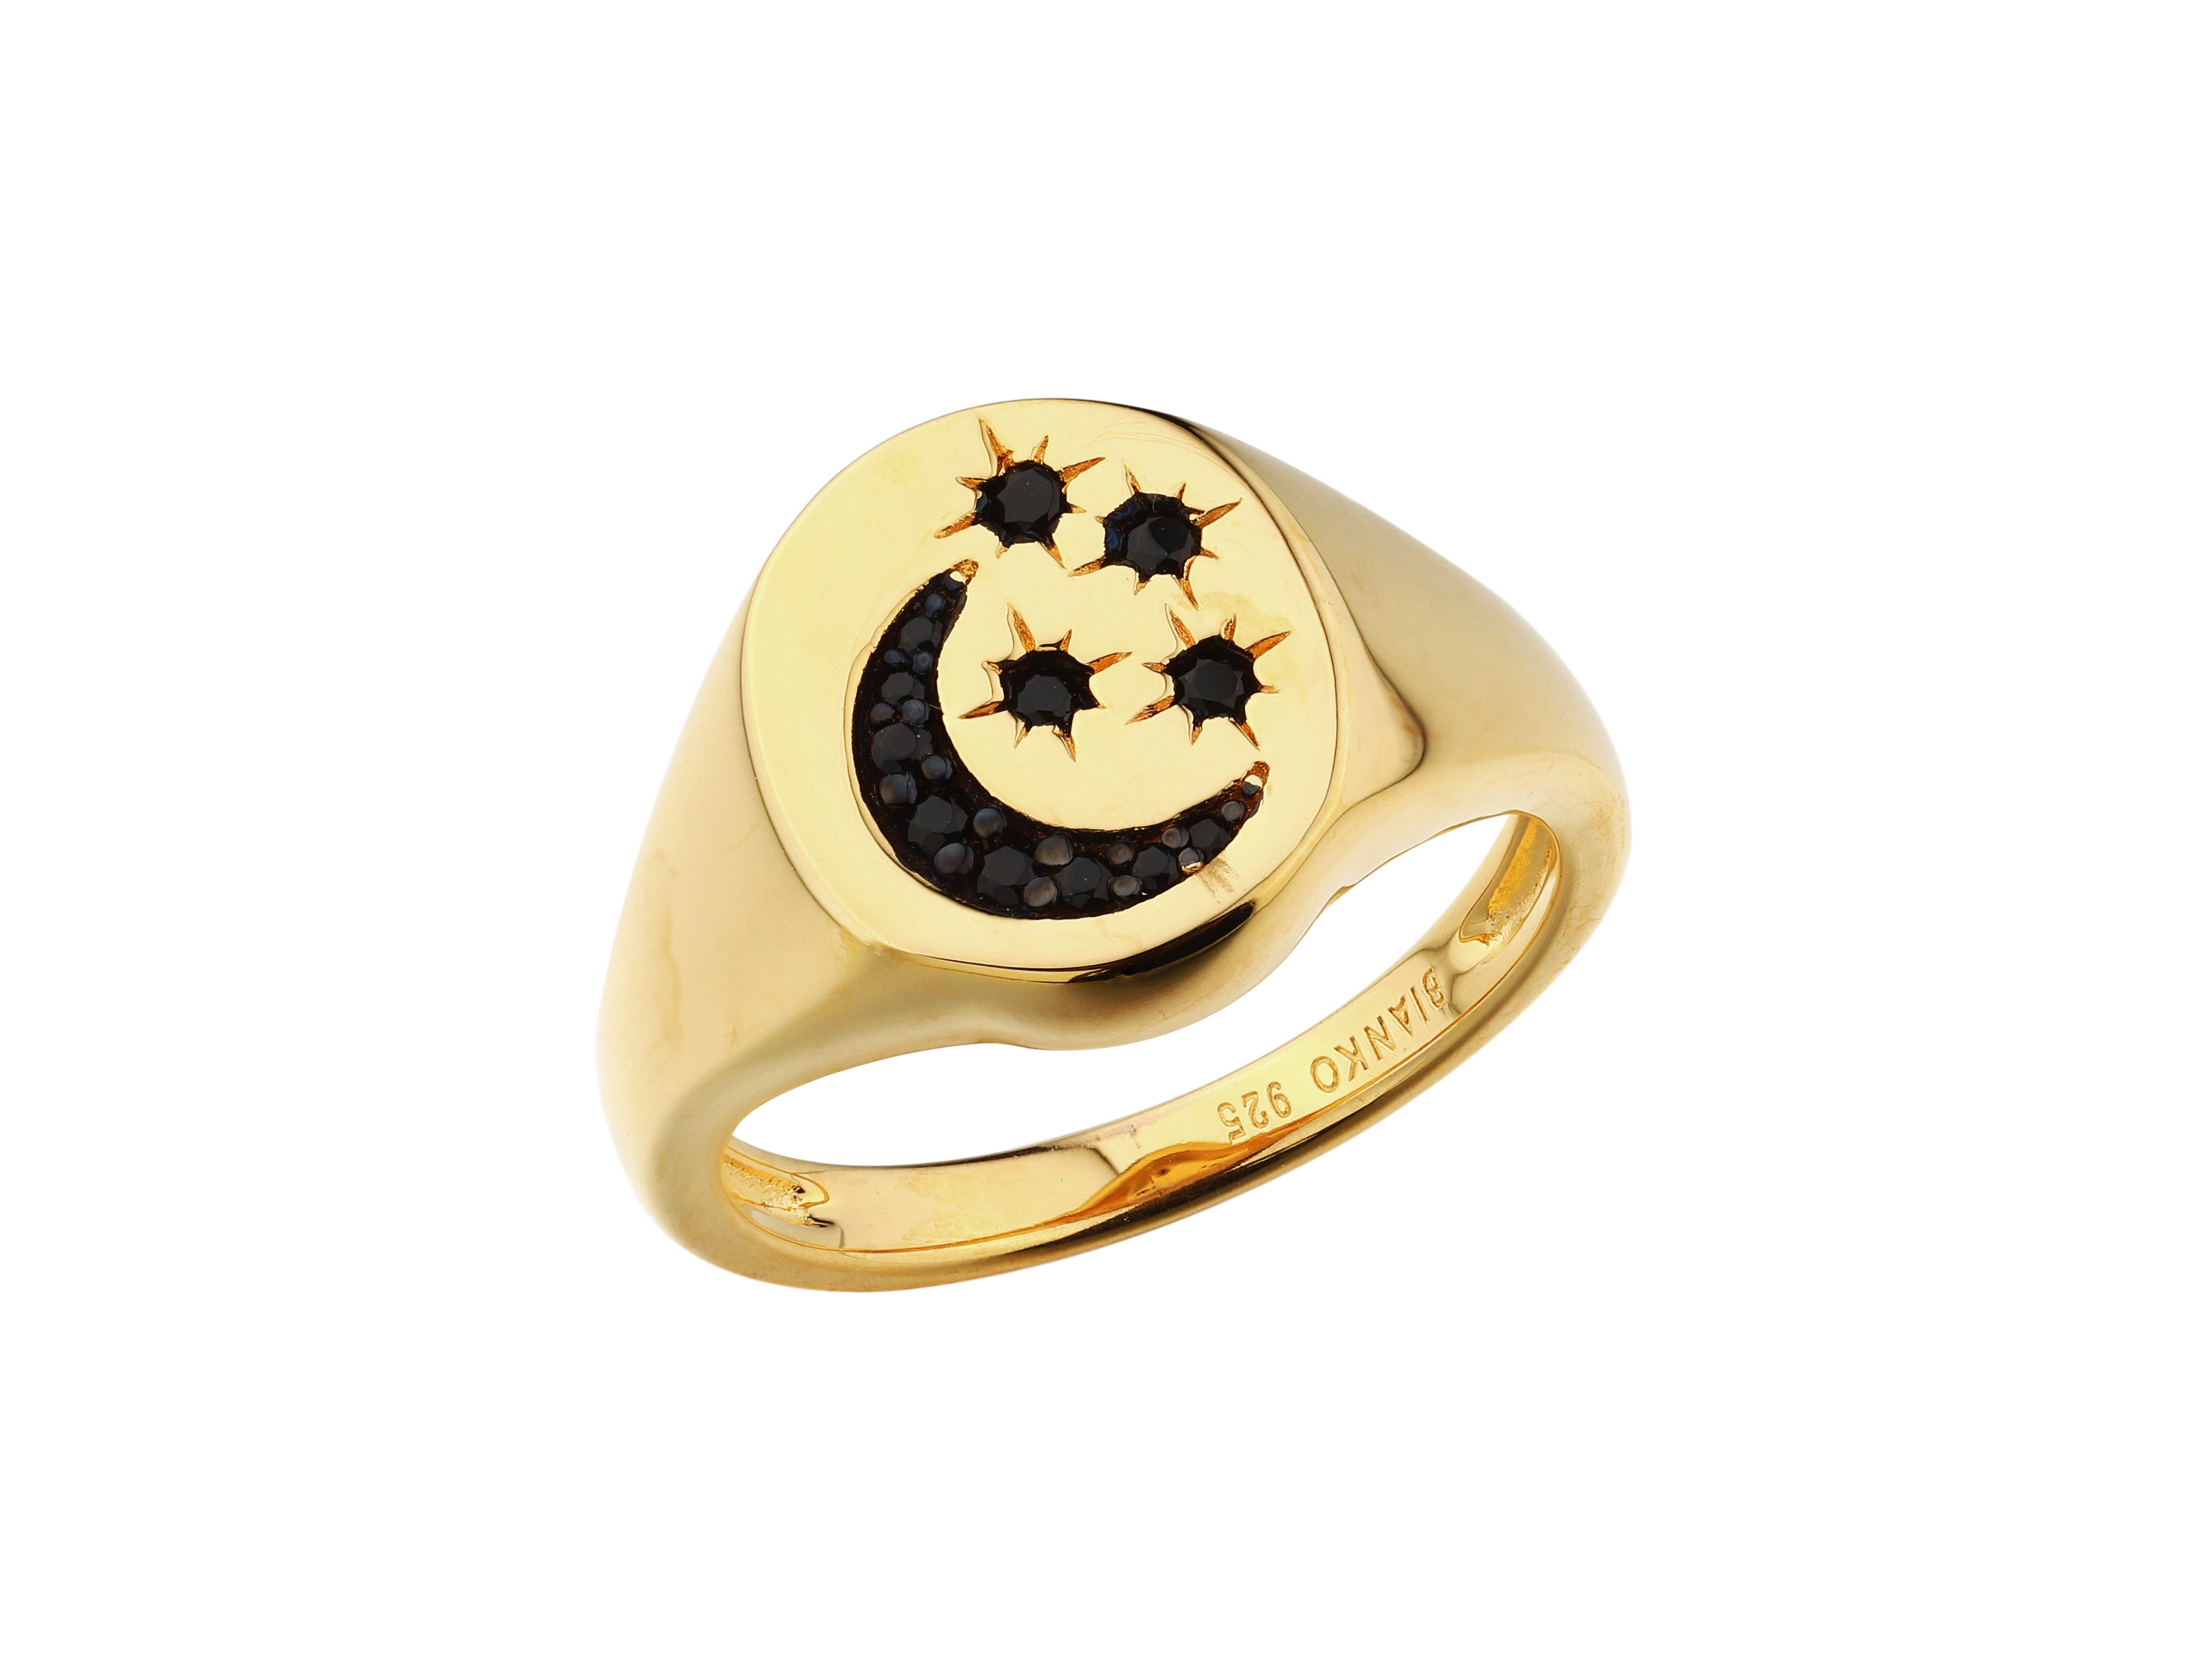 Selene stars and moon signet ring, sterling silver, black spinel, yellow gold plated